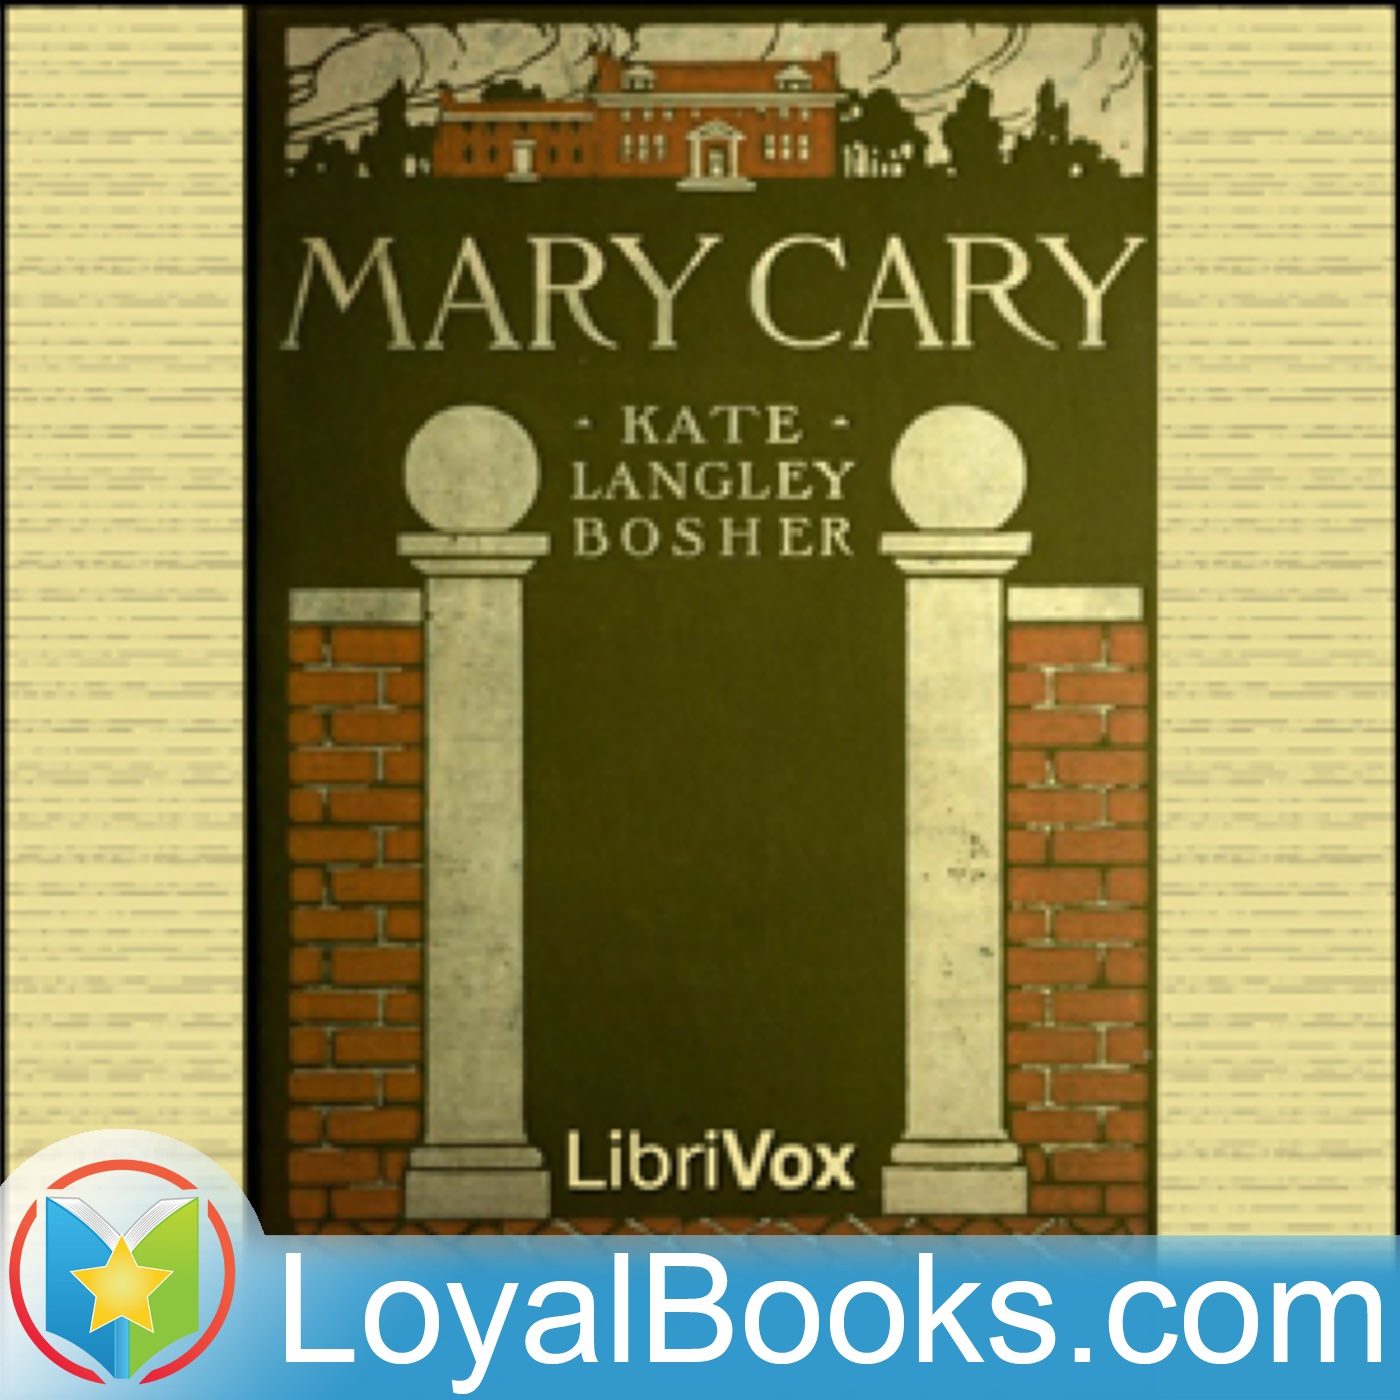 <![CDATA[Mary Cary, Frequently Martha by Kate Langley Bosher]]>